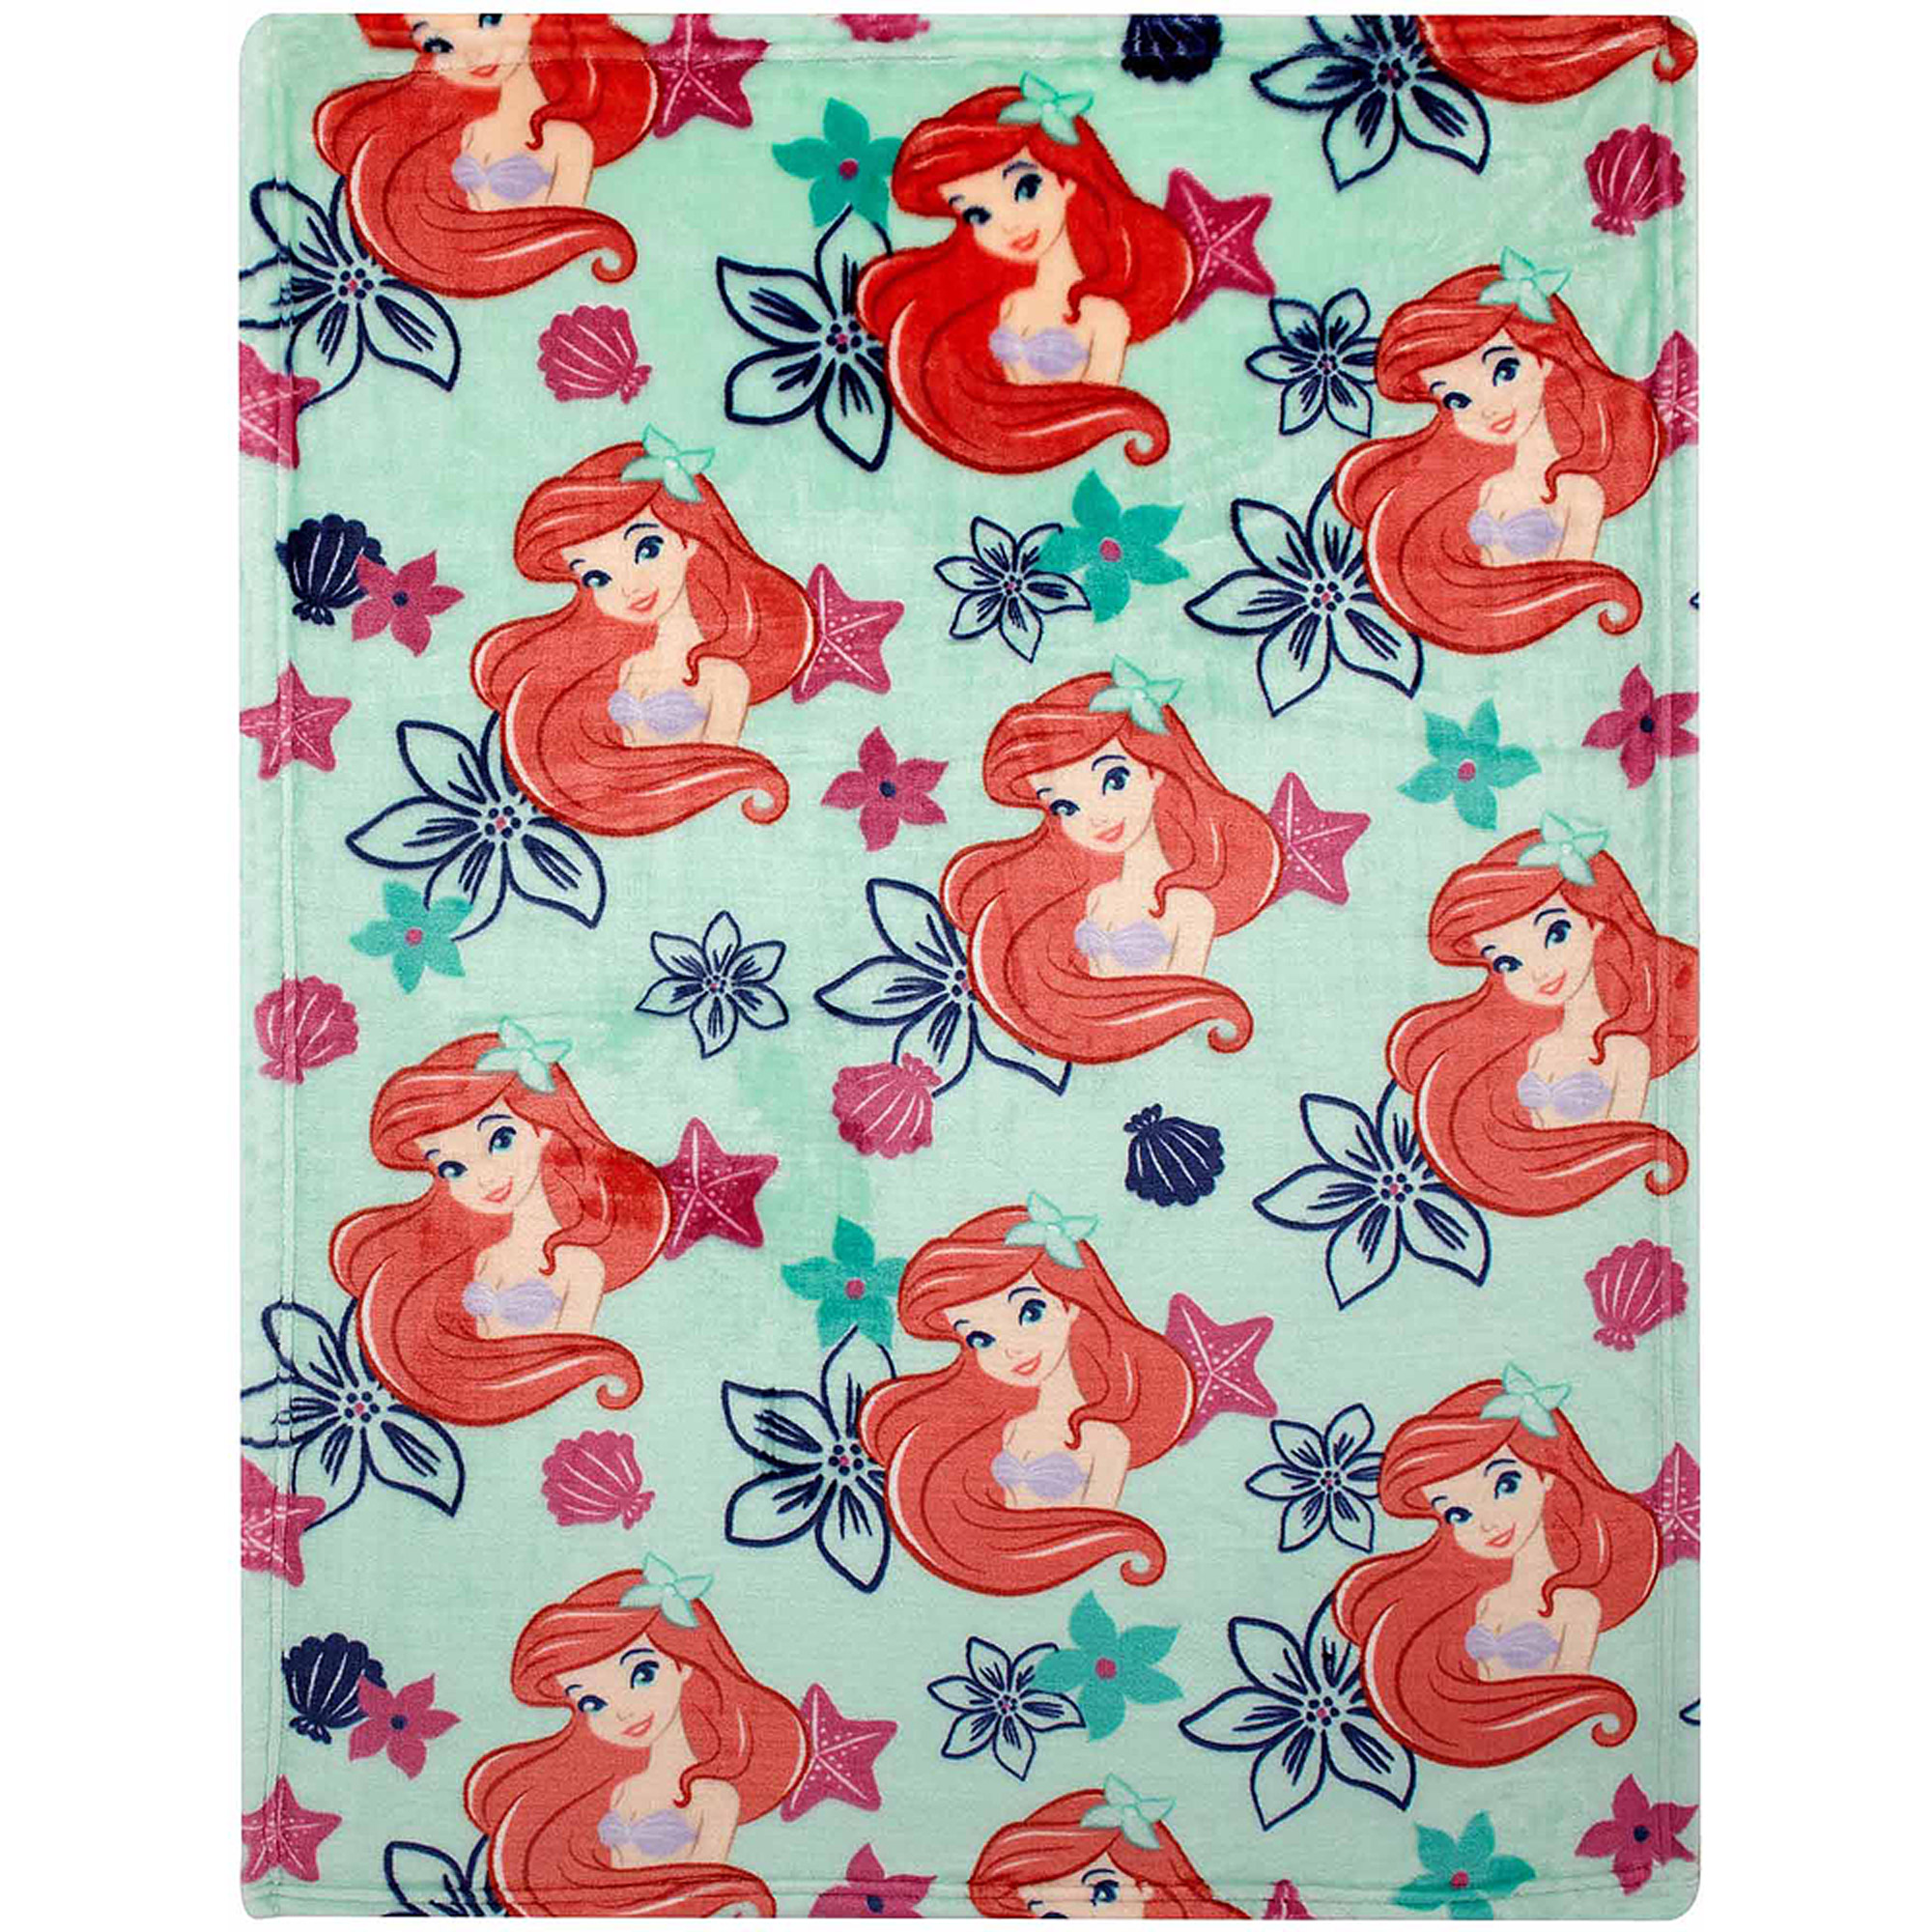 Disney Ariel Plush Printed Blanket